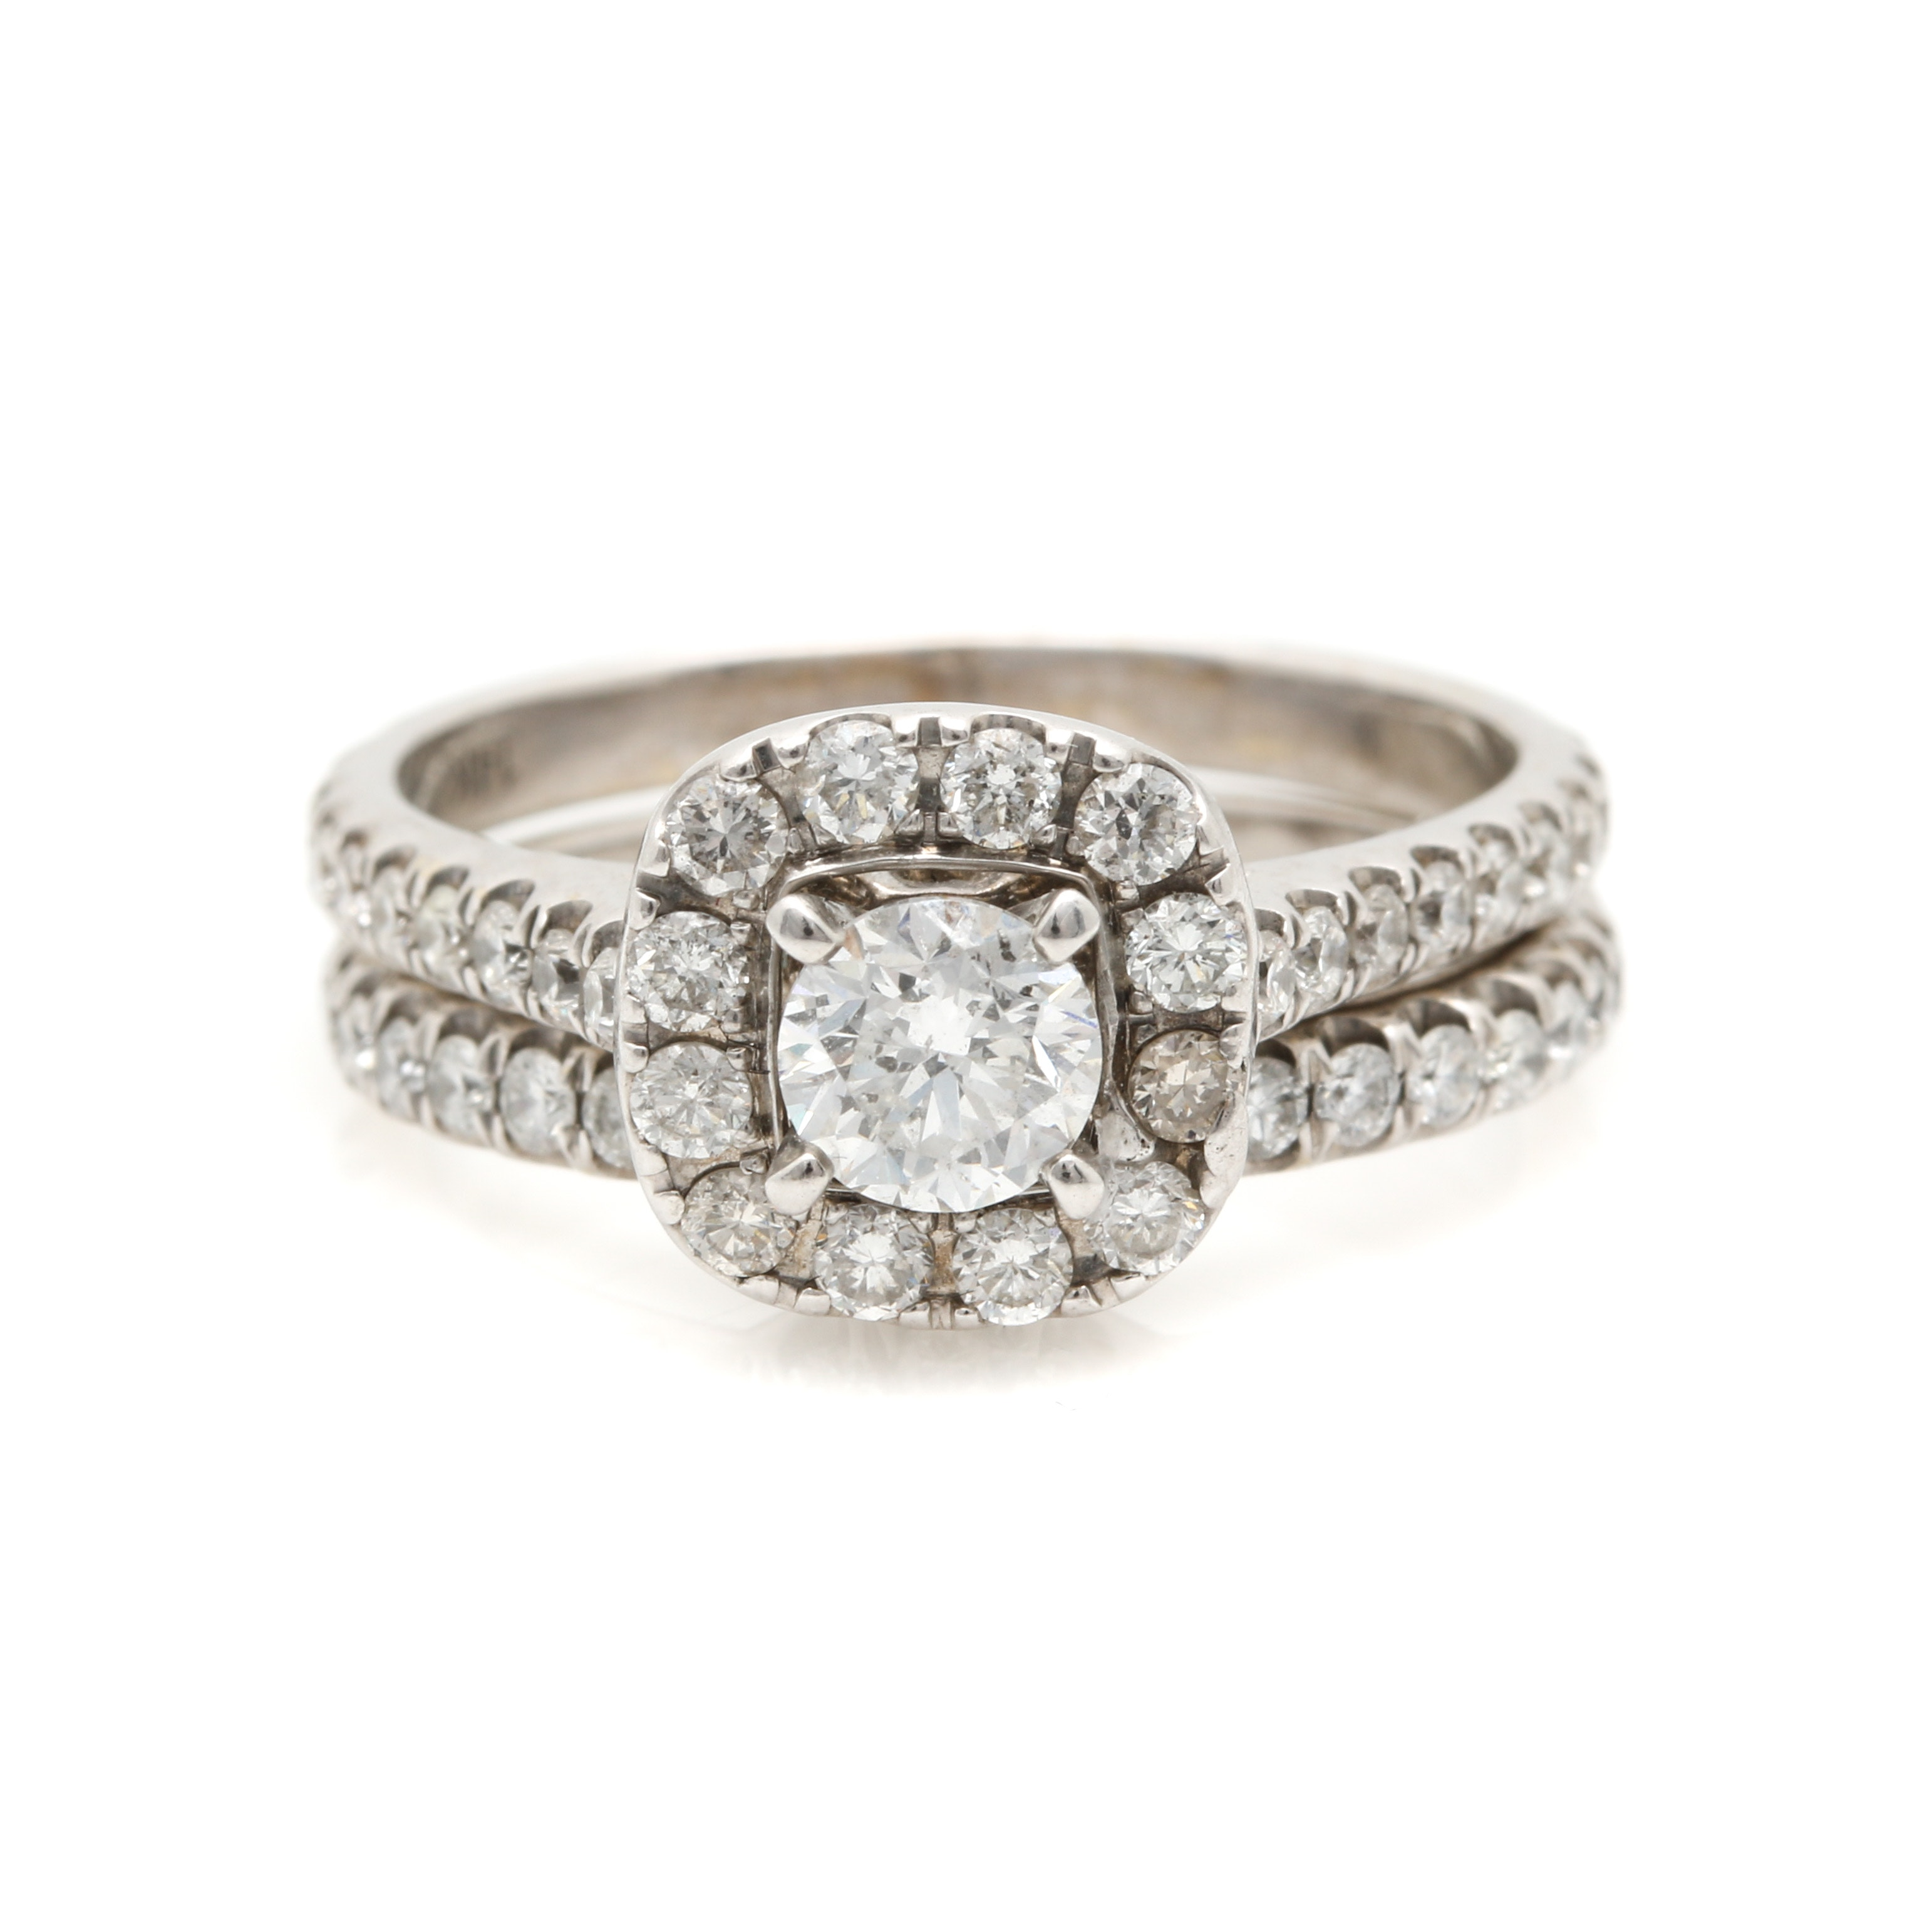 14K White Gold 1.70 CTW Diamond Engagement Ring and Band